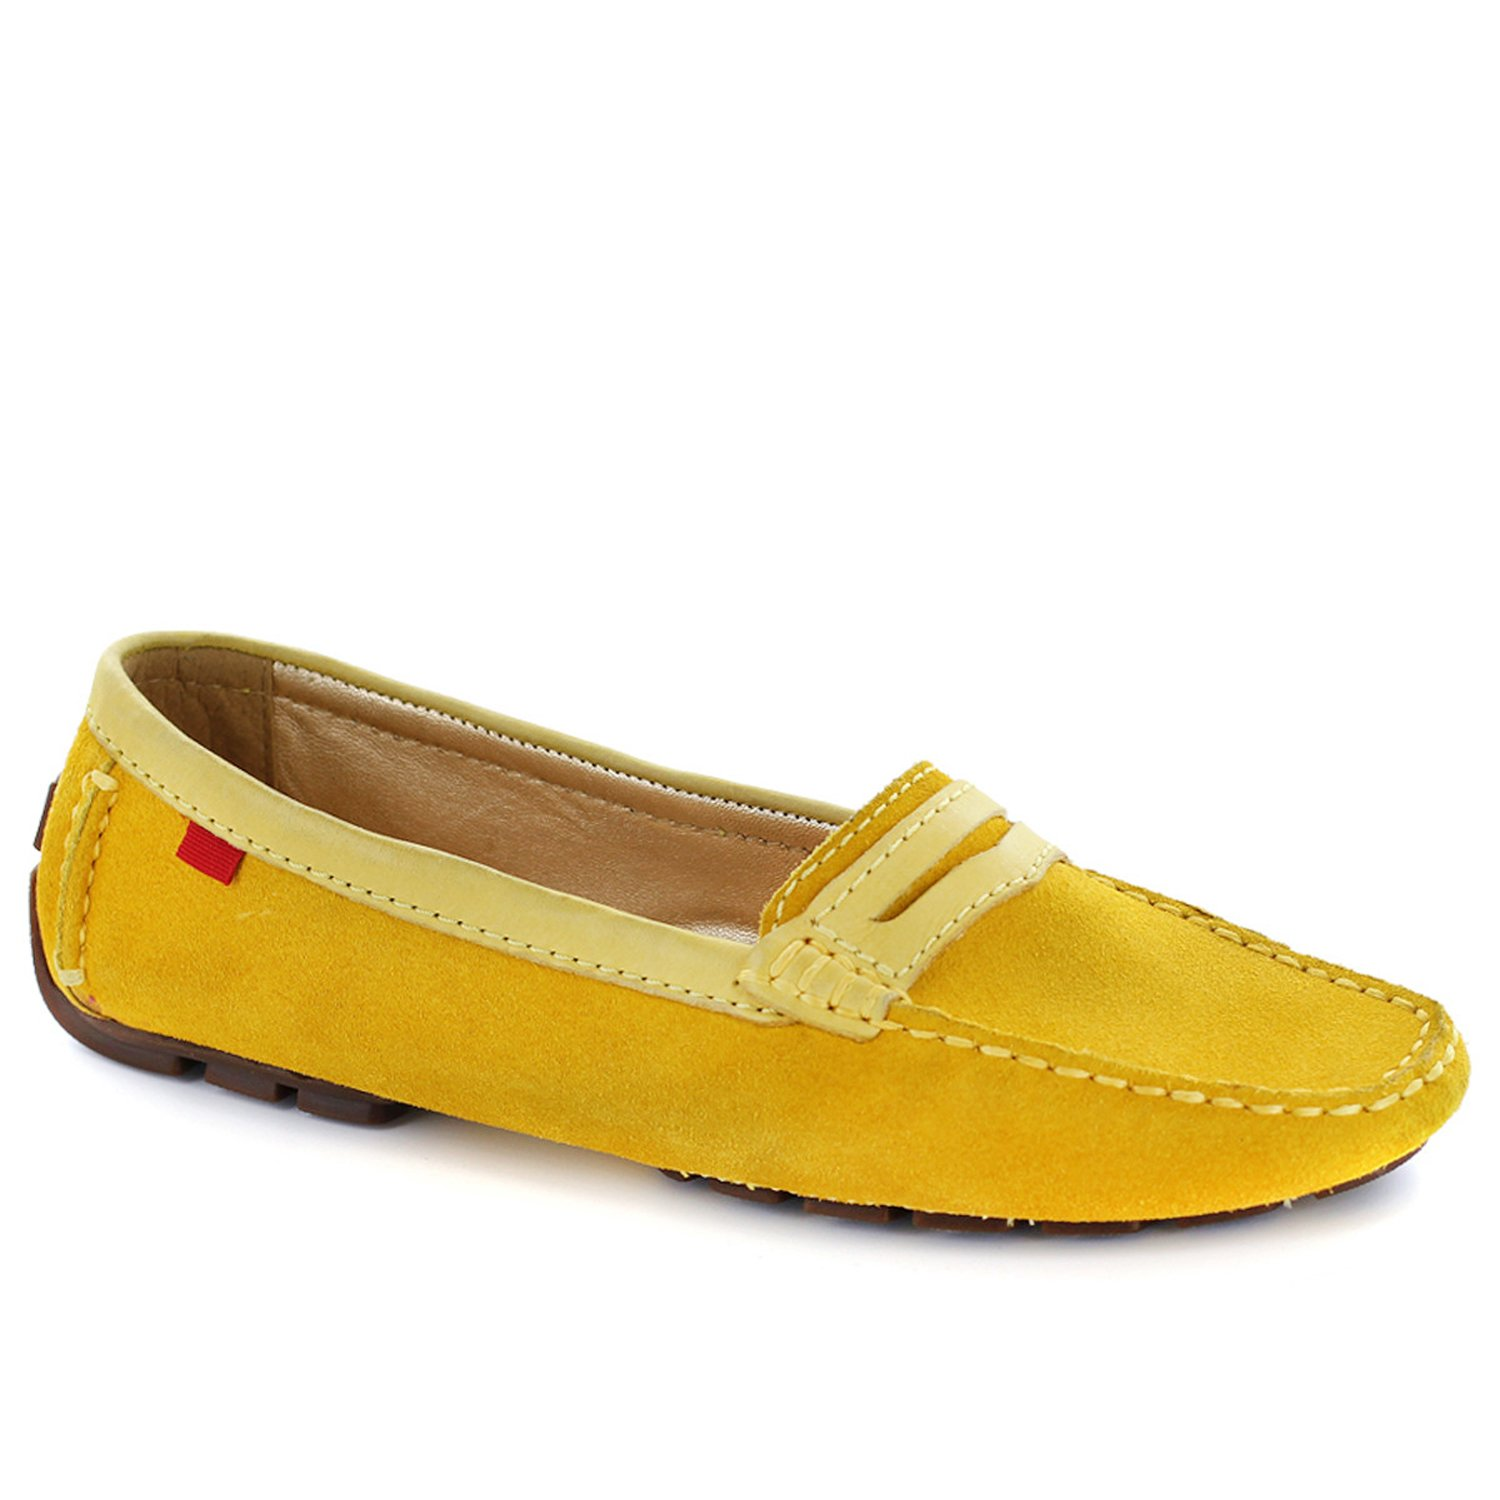 Marc Joseph New York Women's Yellow Suede Loafer 8.5